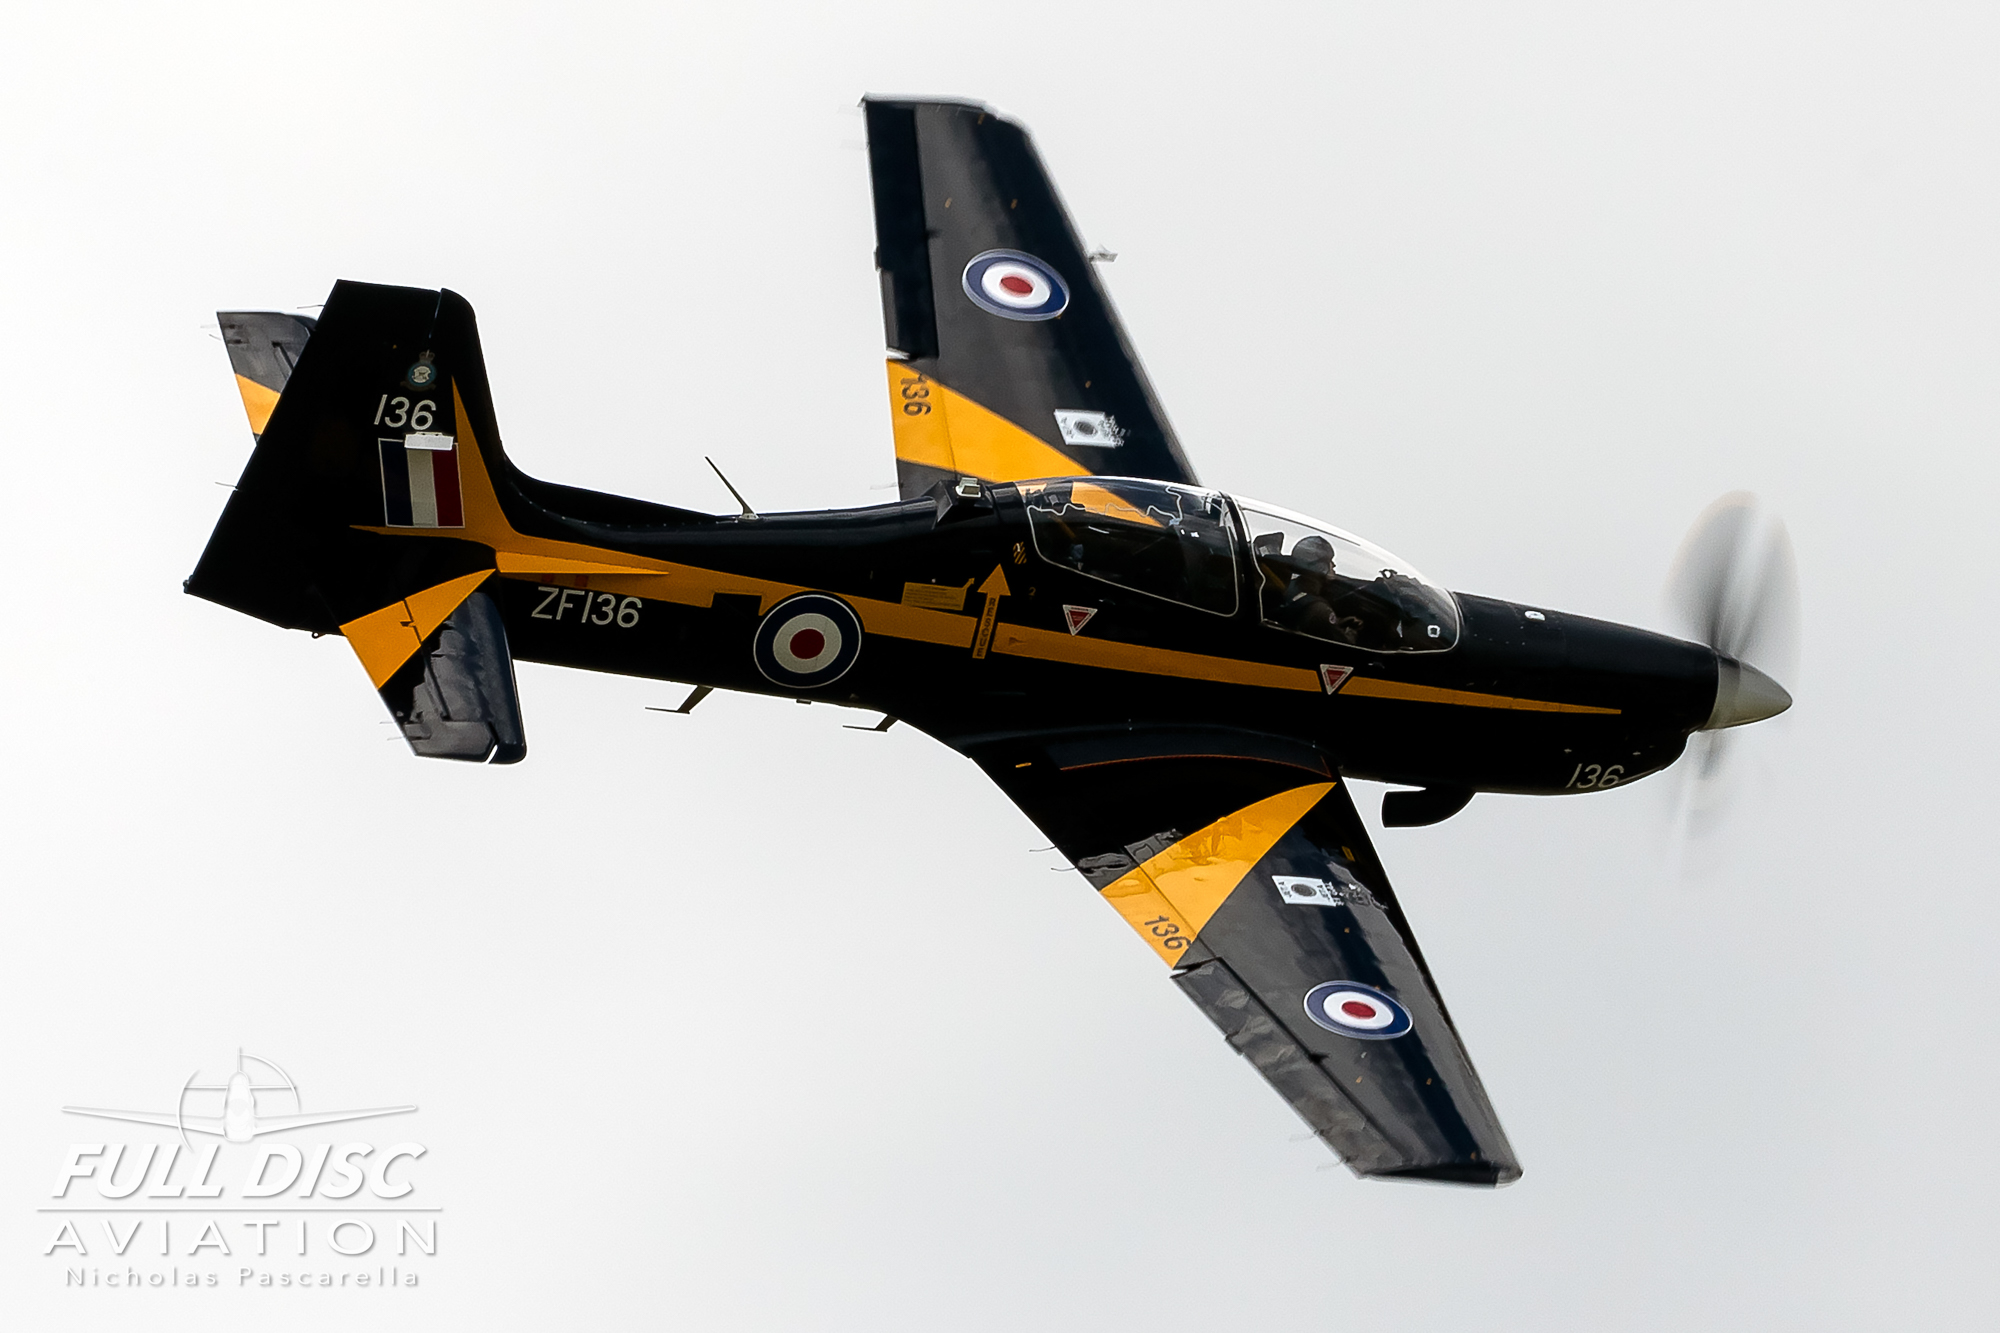 leeleets_tucano__aviation__nickpascarella_nicholaspascarella_fulldiscaviation_leasewebmanassasairshow.jpg